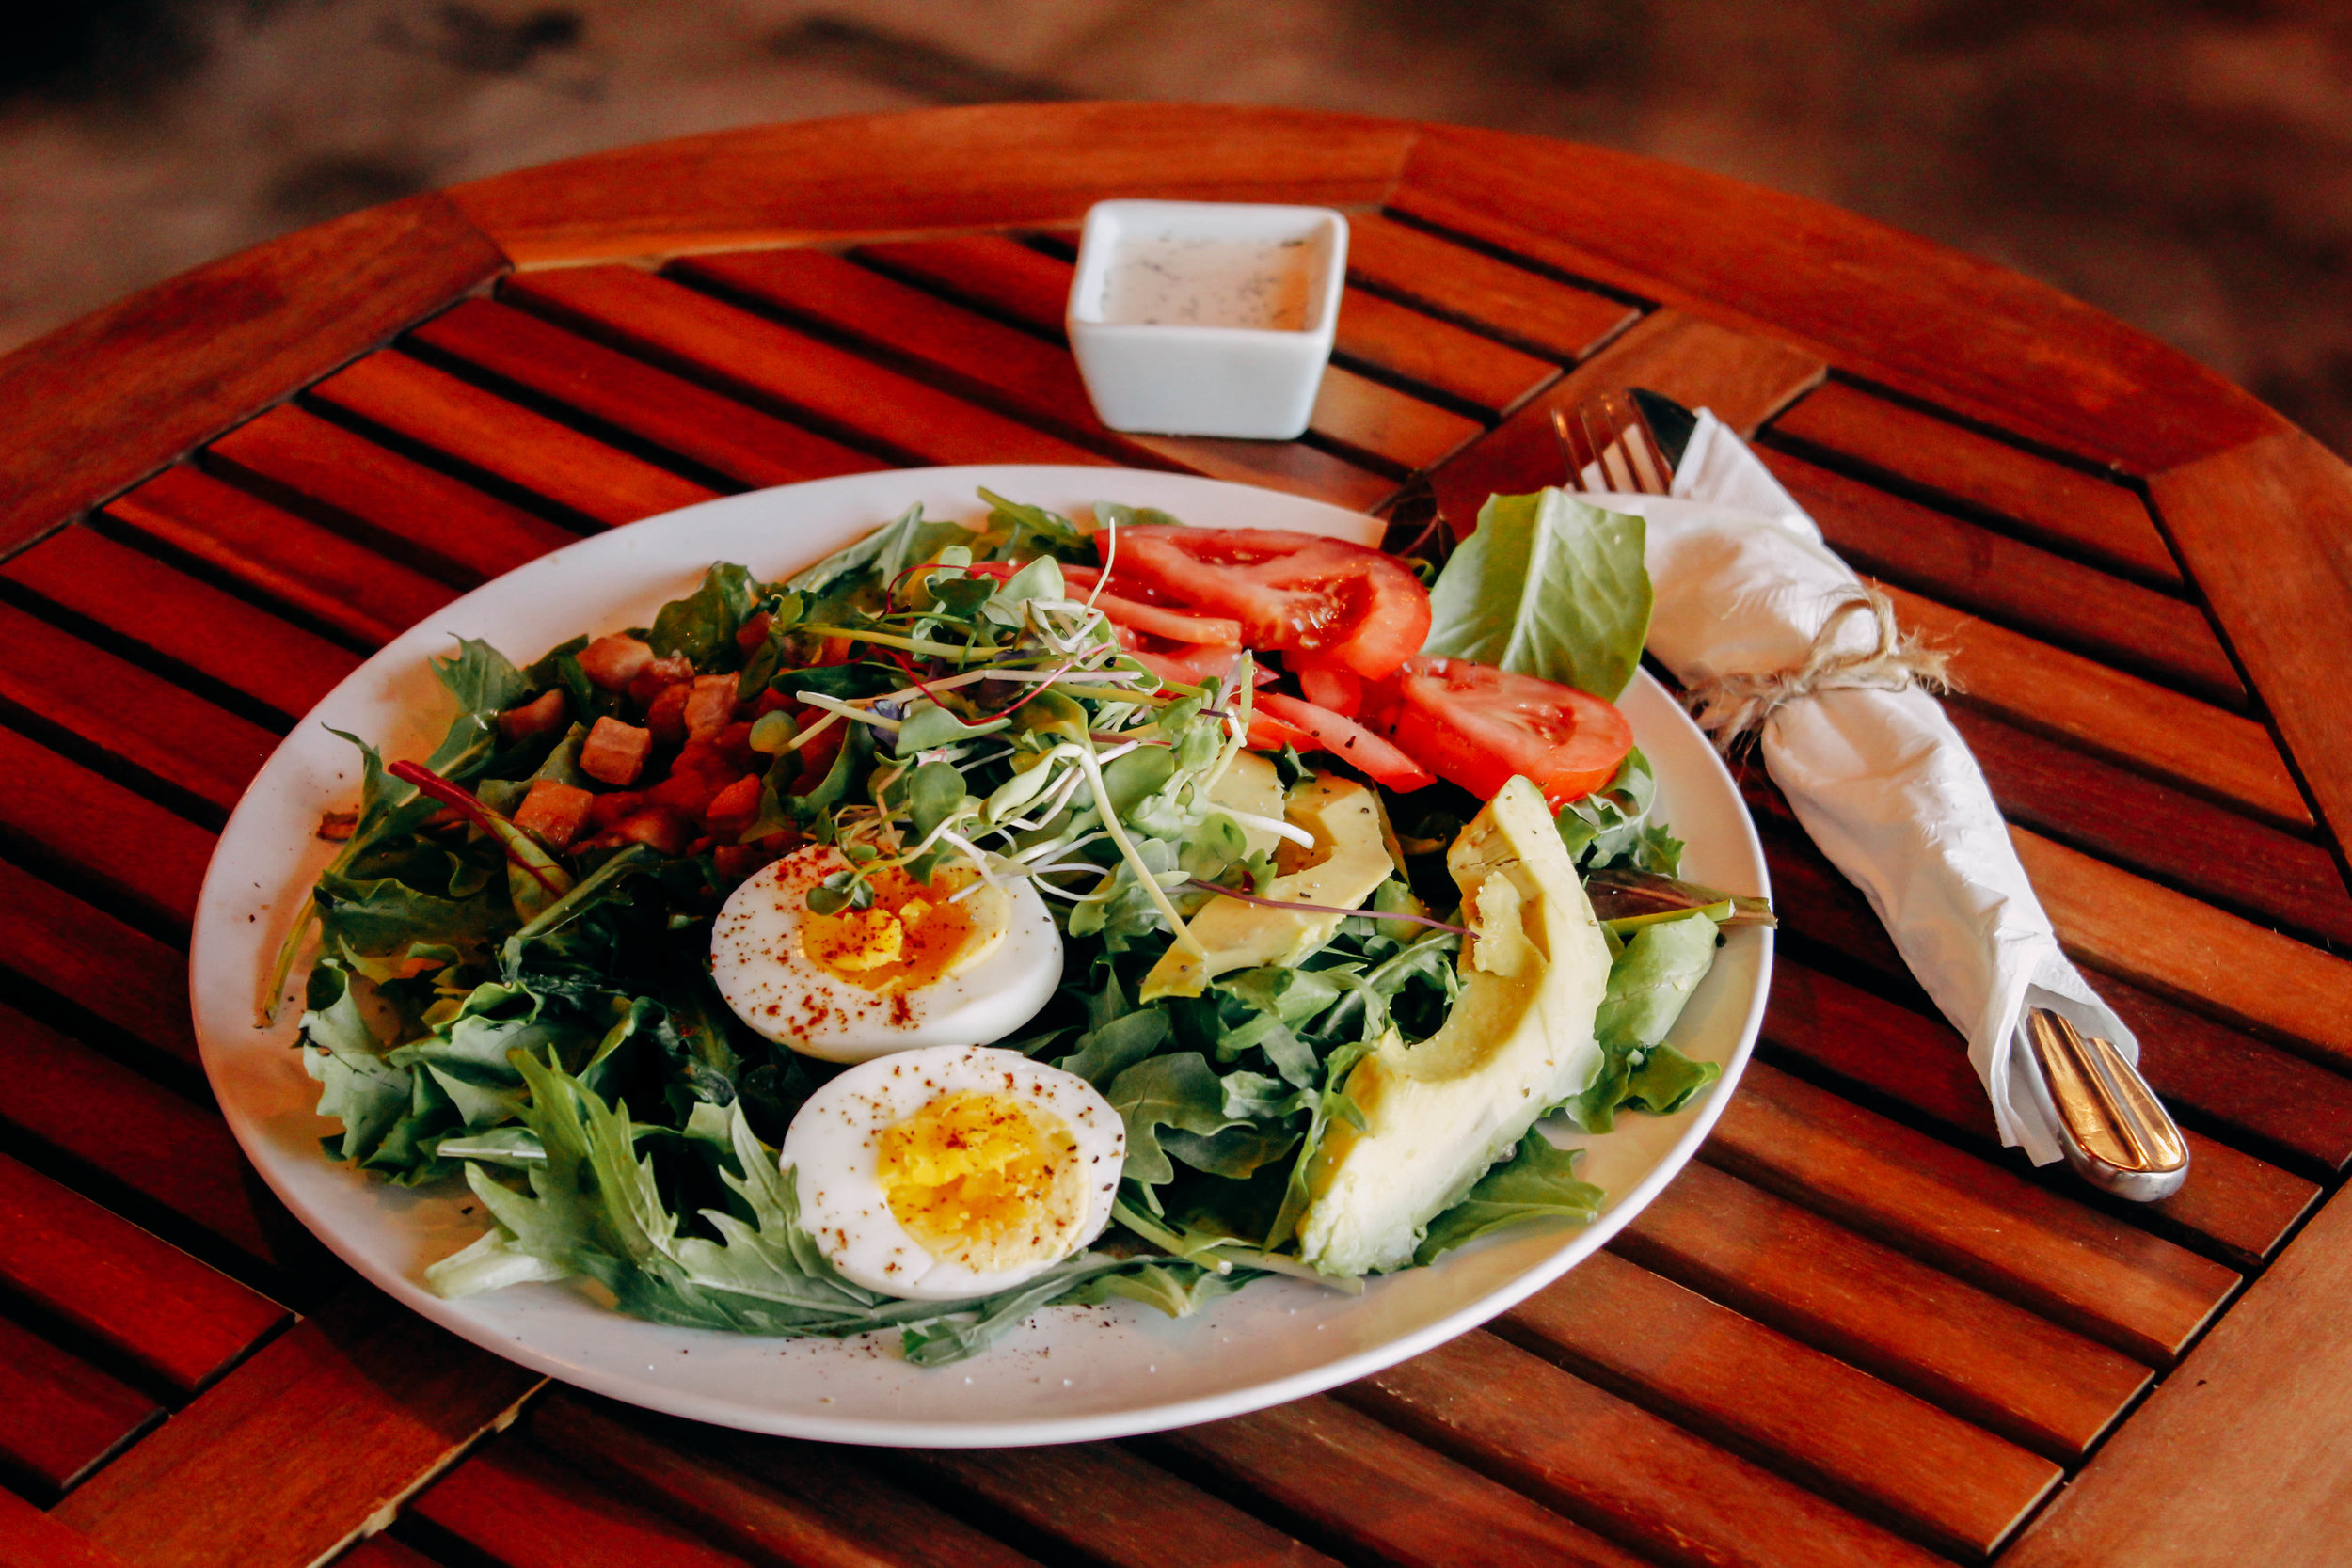 Heritage Roasting Co has a newly launched brunch menu serving up in-house baked goods, Avocado toasts, and healthy but delicious salad options. In Shasta Lake, 8 Mins from Redding.